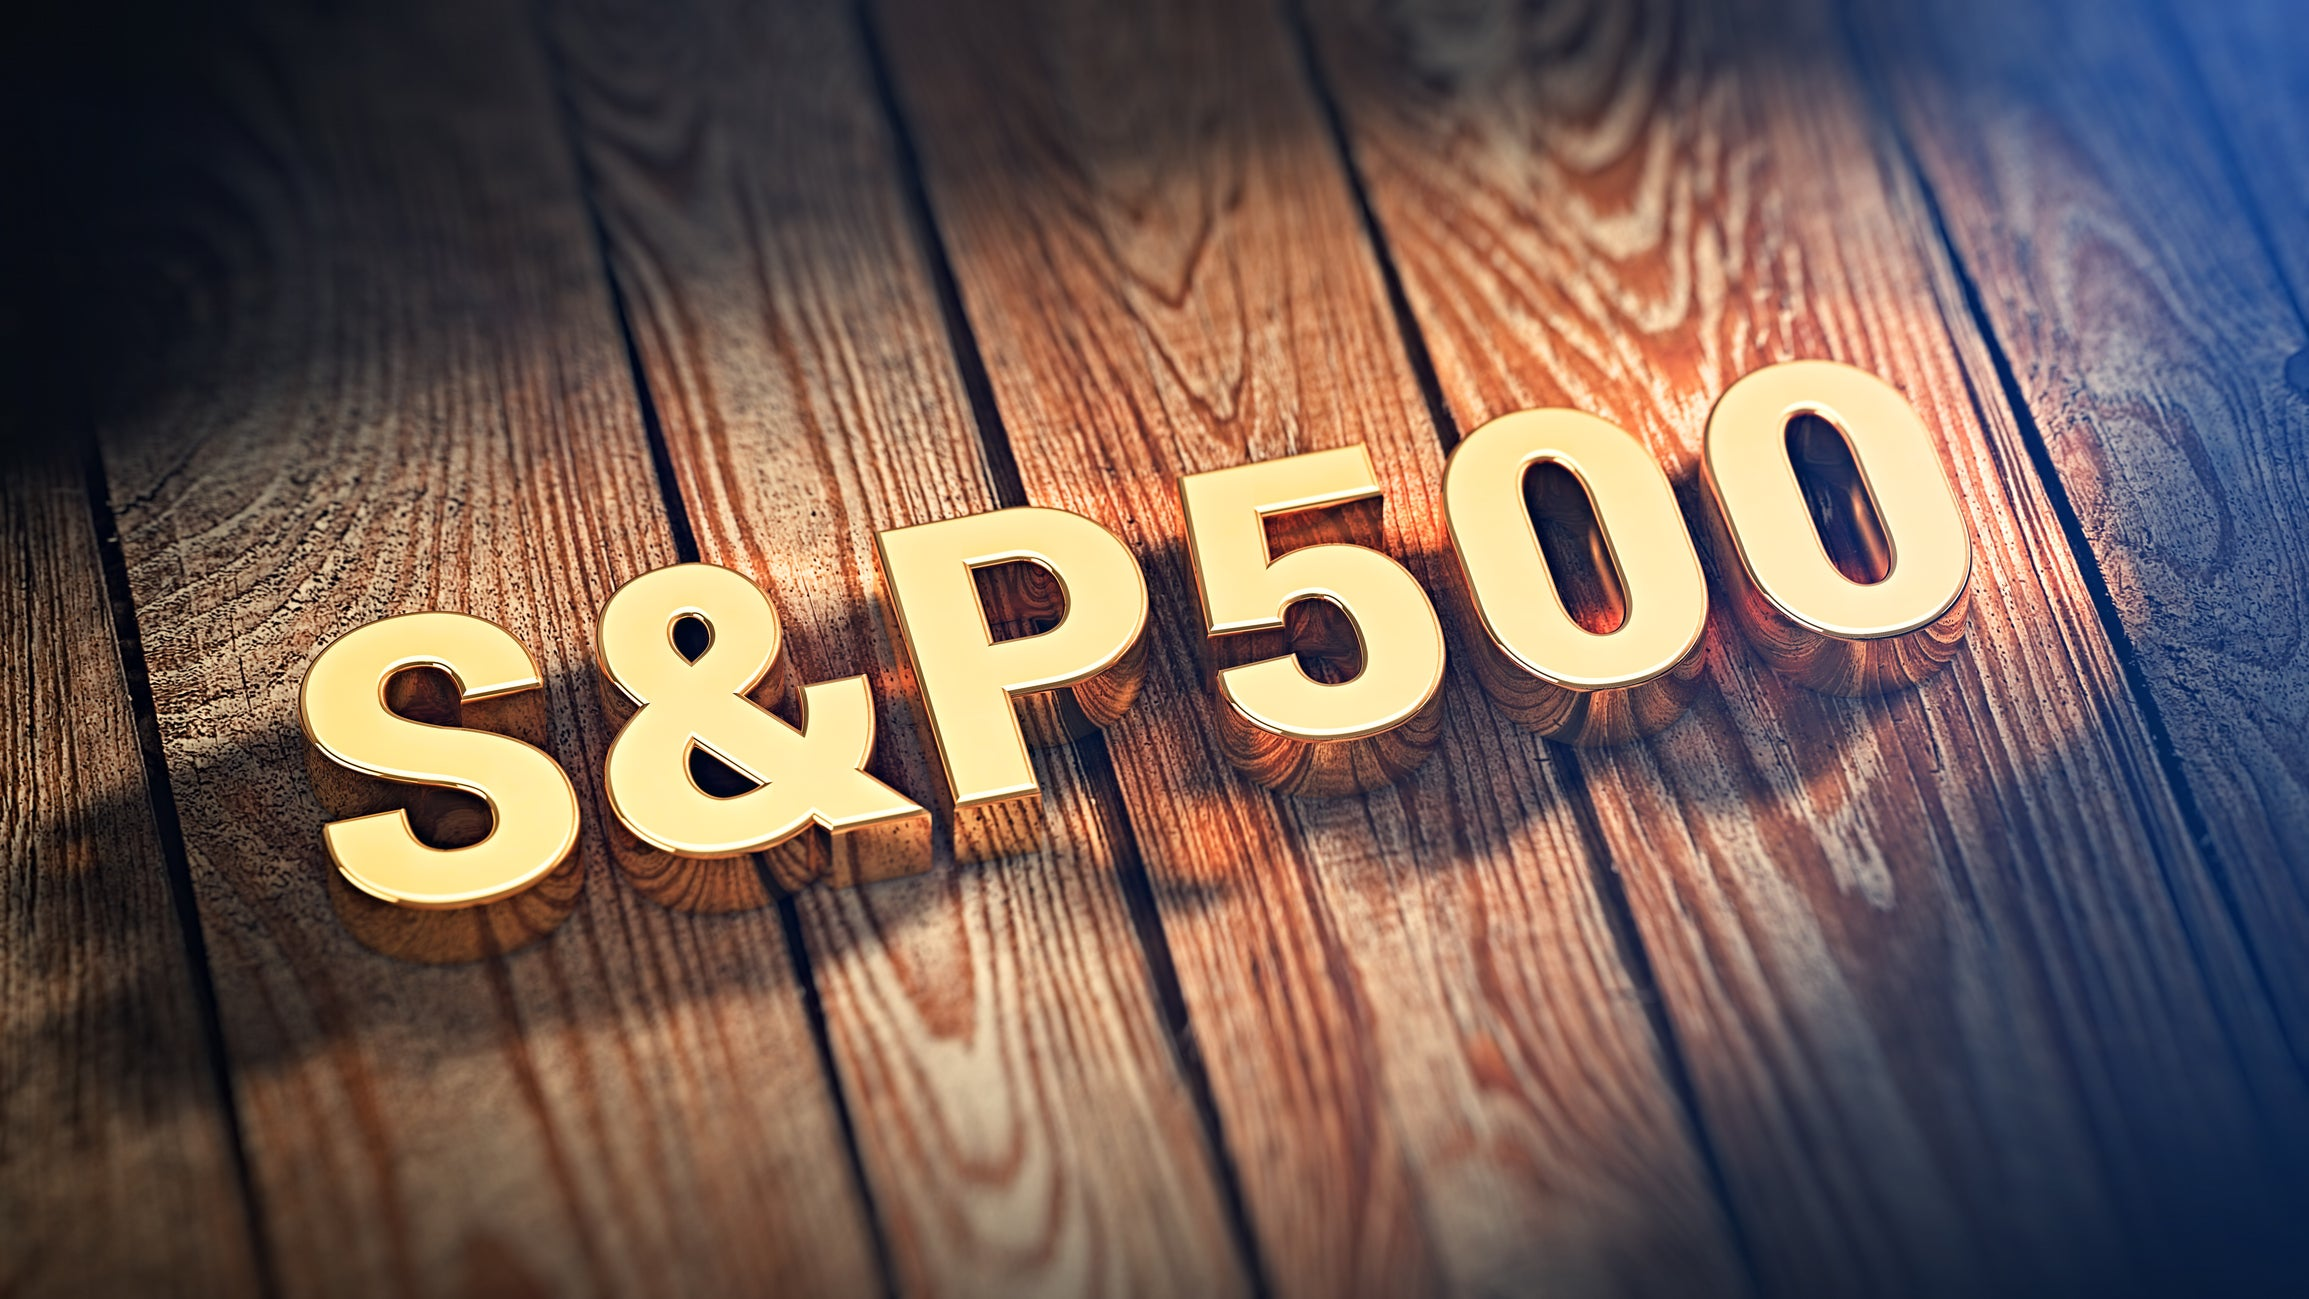 S&P affirms India's long-term sovereign credit rating, outlook